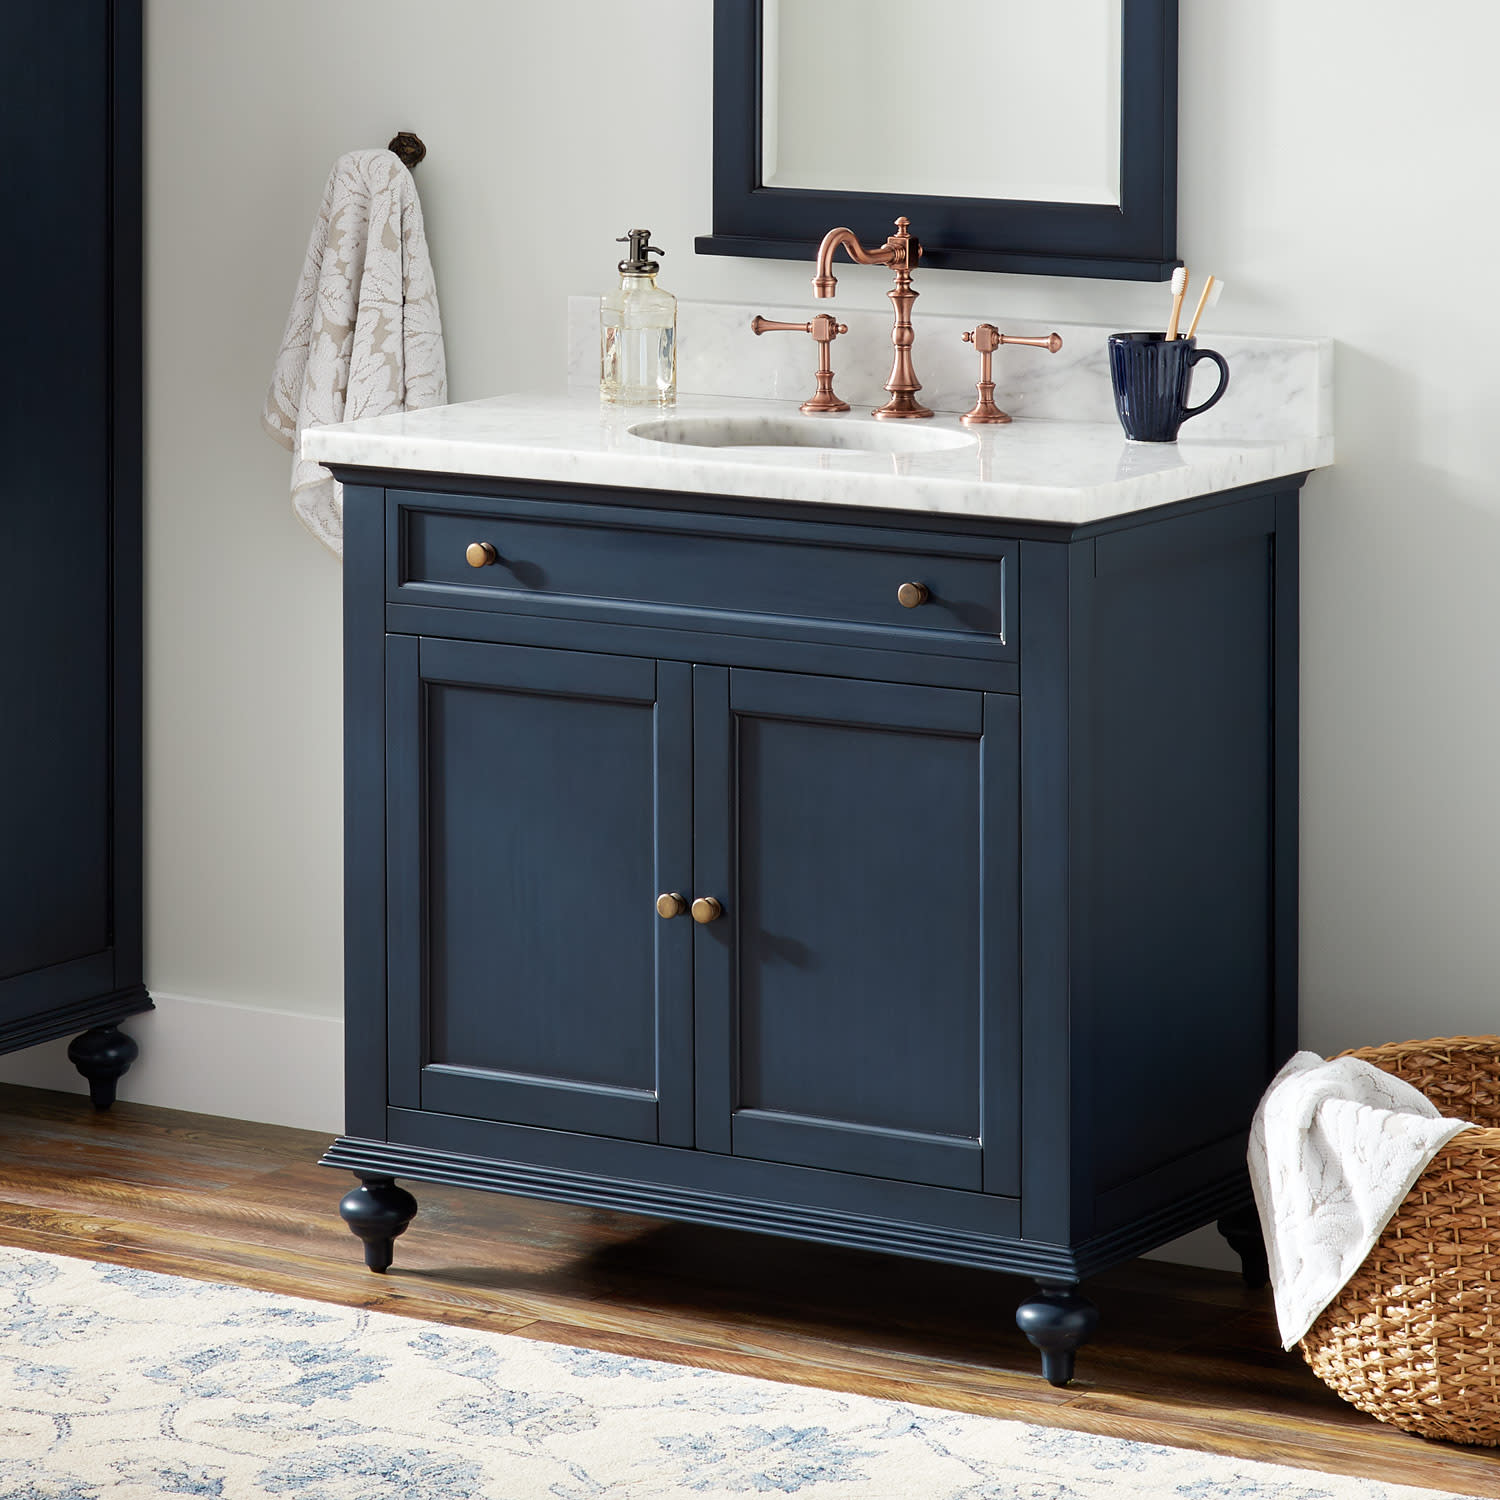 Signature Hardware 433849 Vintage Navy Blue Keller 36 Mahogany Wood Single Vanity Cabinet Choose Your Vanity Top And Sink Configuration Faucet Com